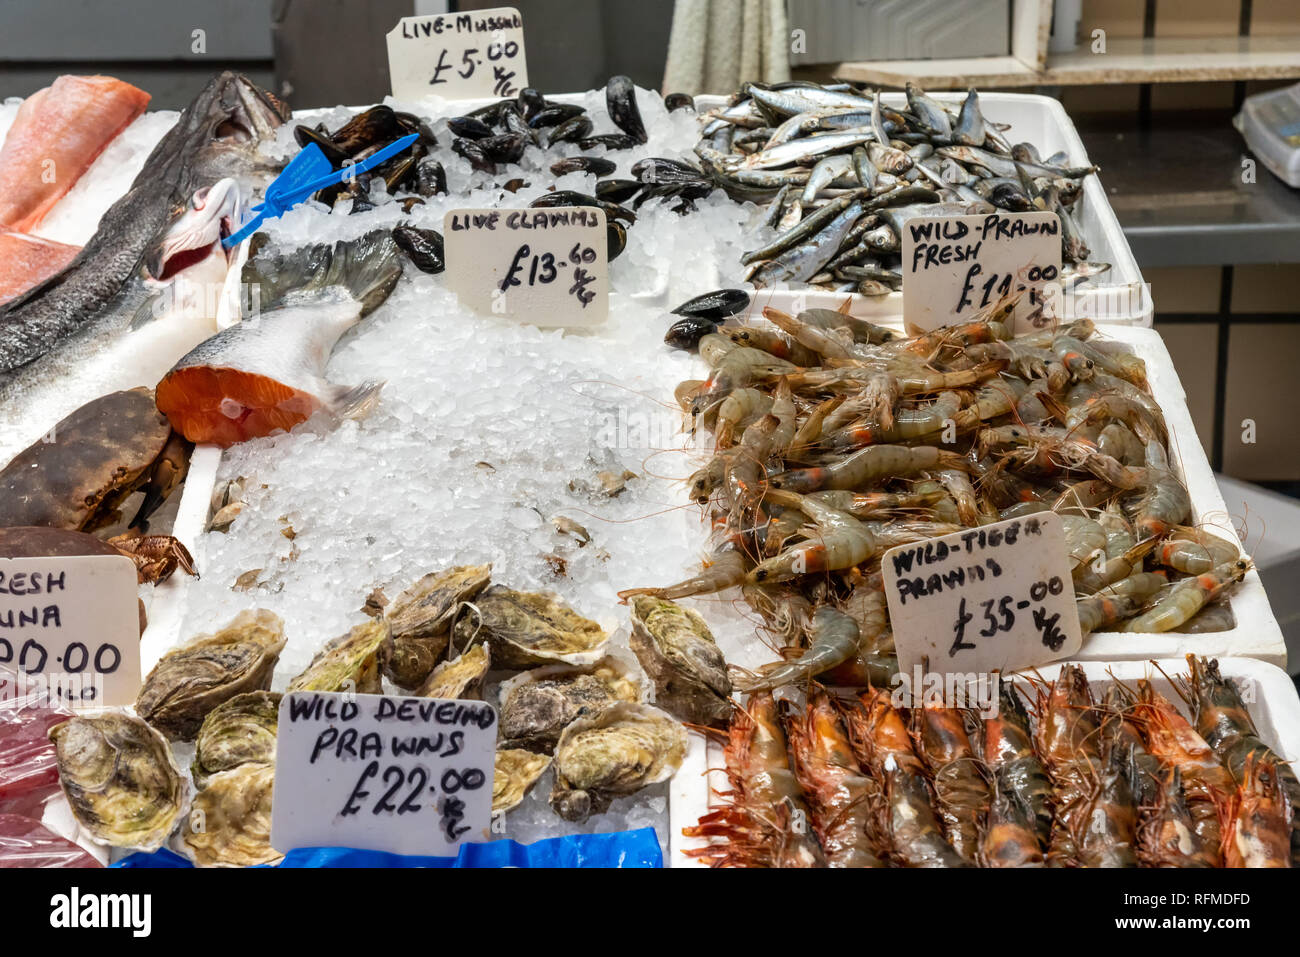 Clams and crustaceans for sale at a market - Stock Image